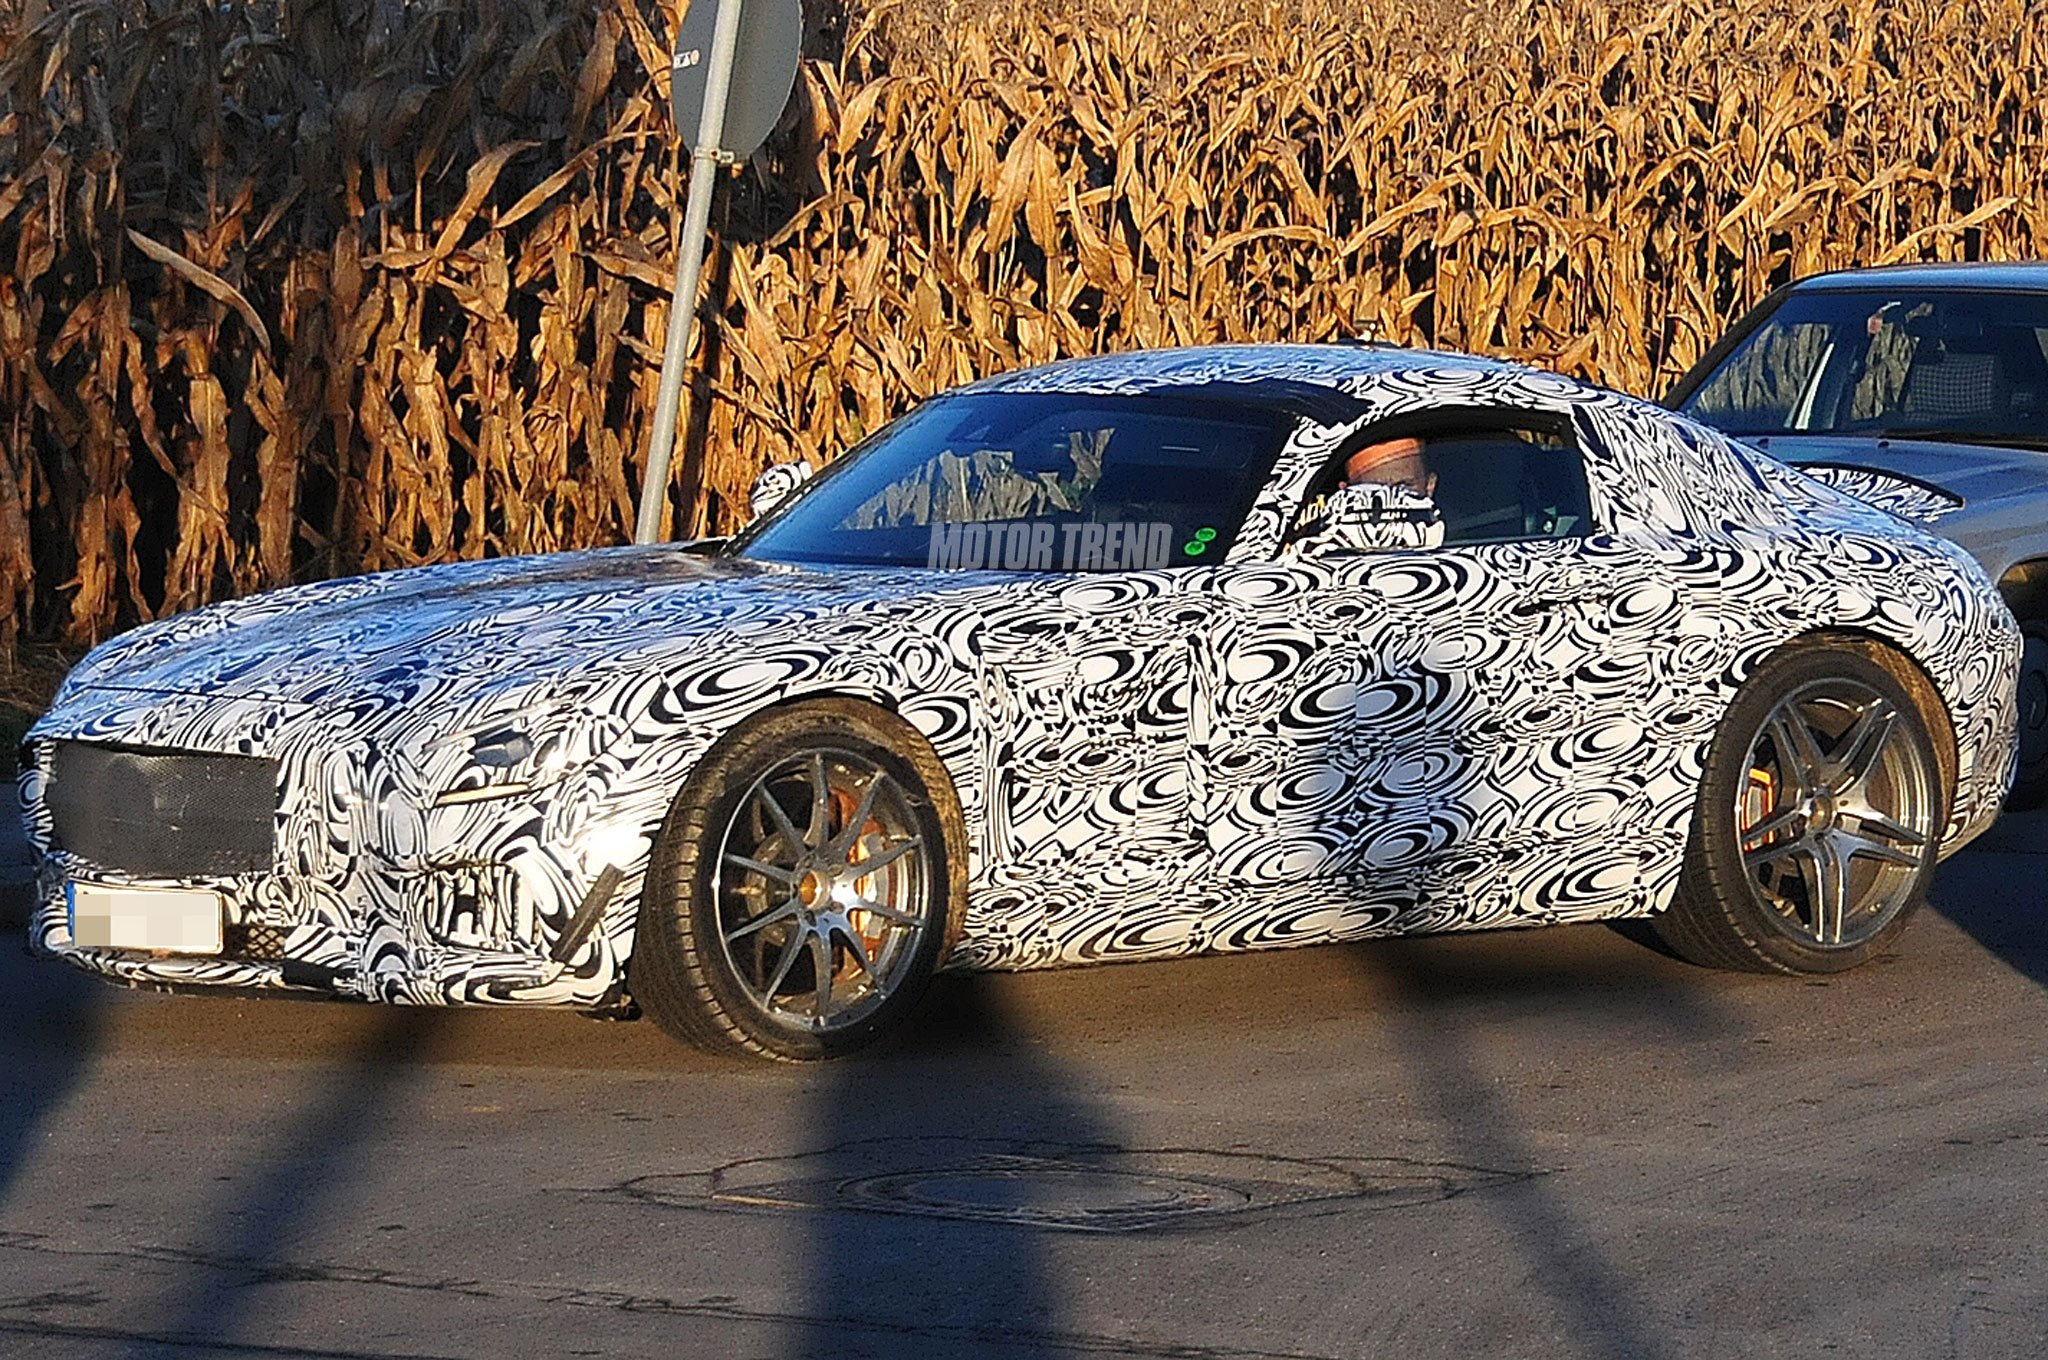 Spied: 911-Fighting Mercedes AMG GT Coupe, 2015 C-Class Wagon